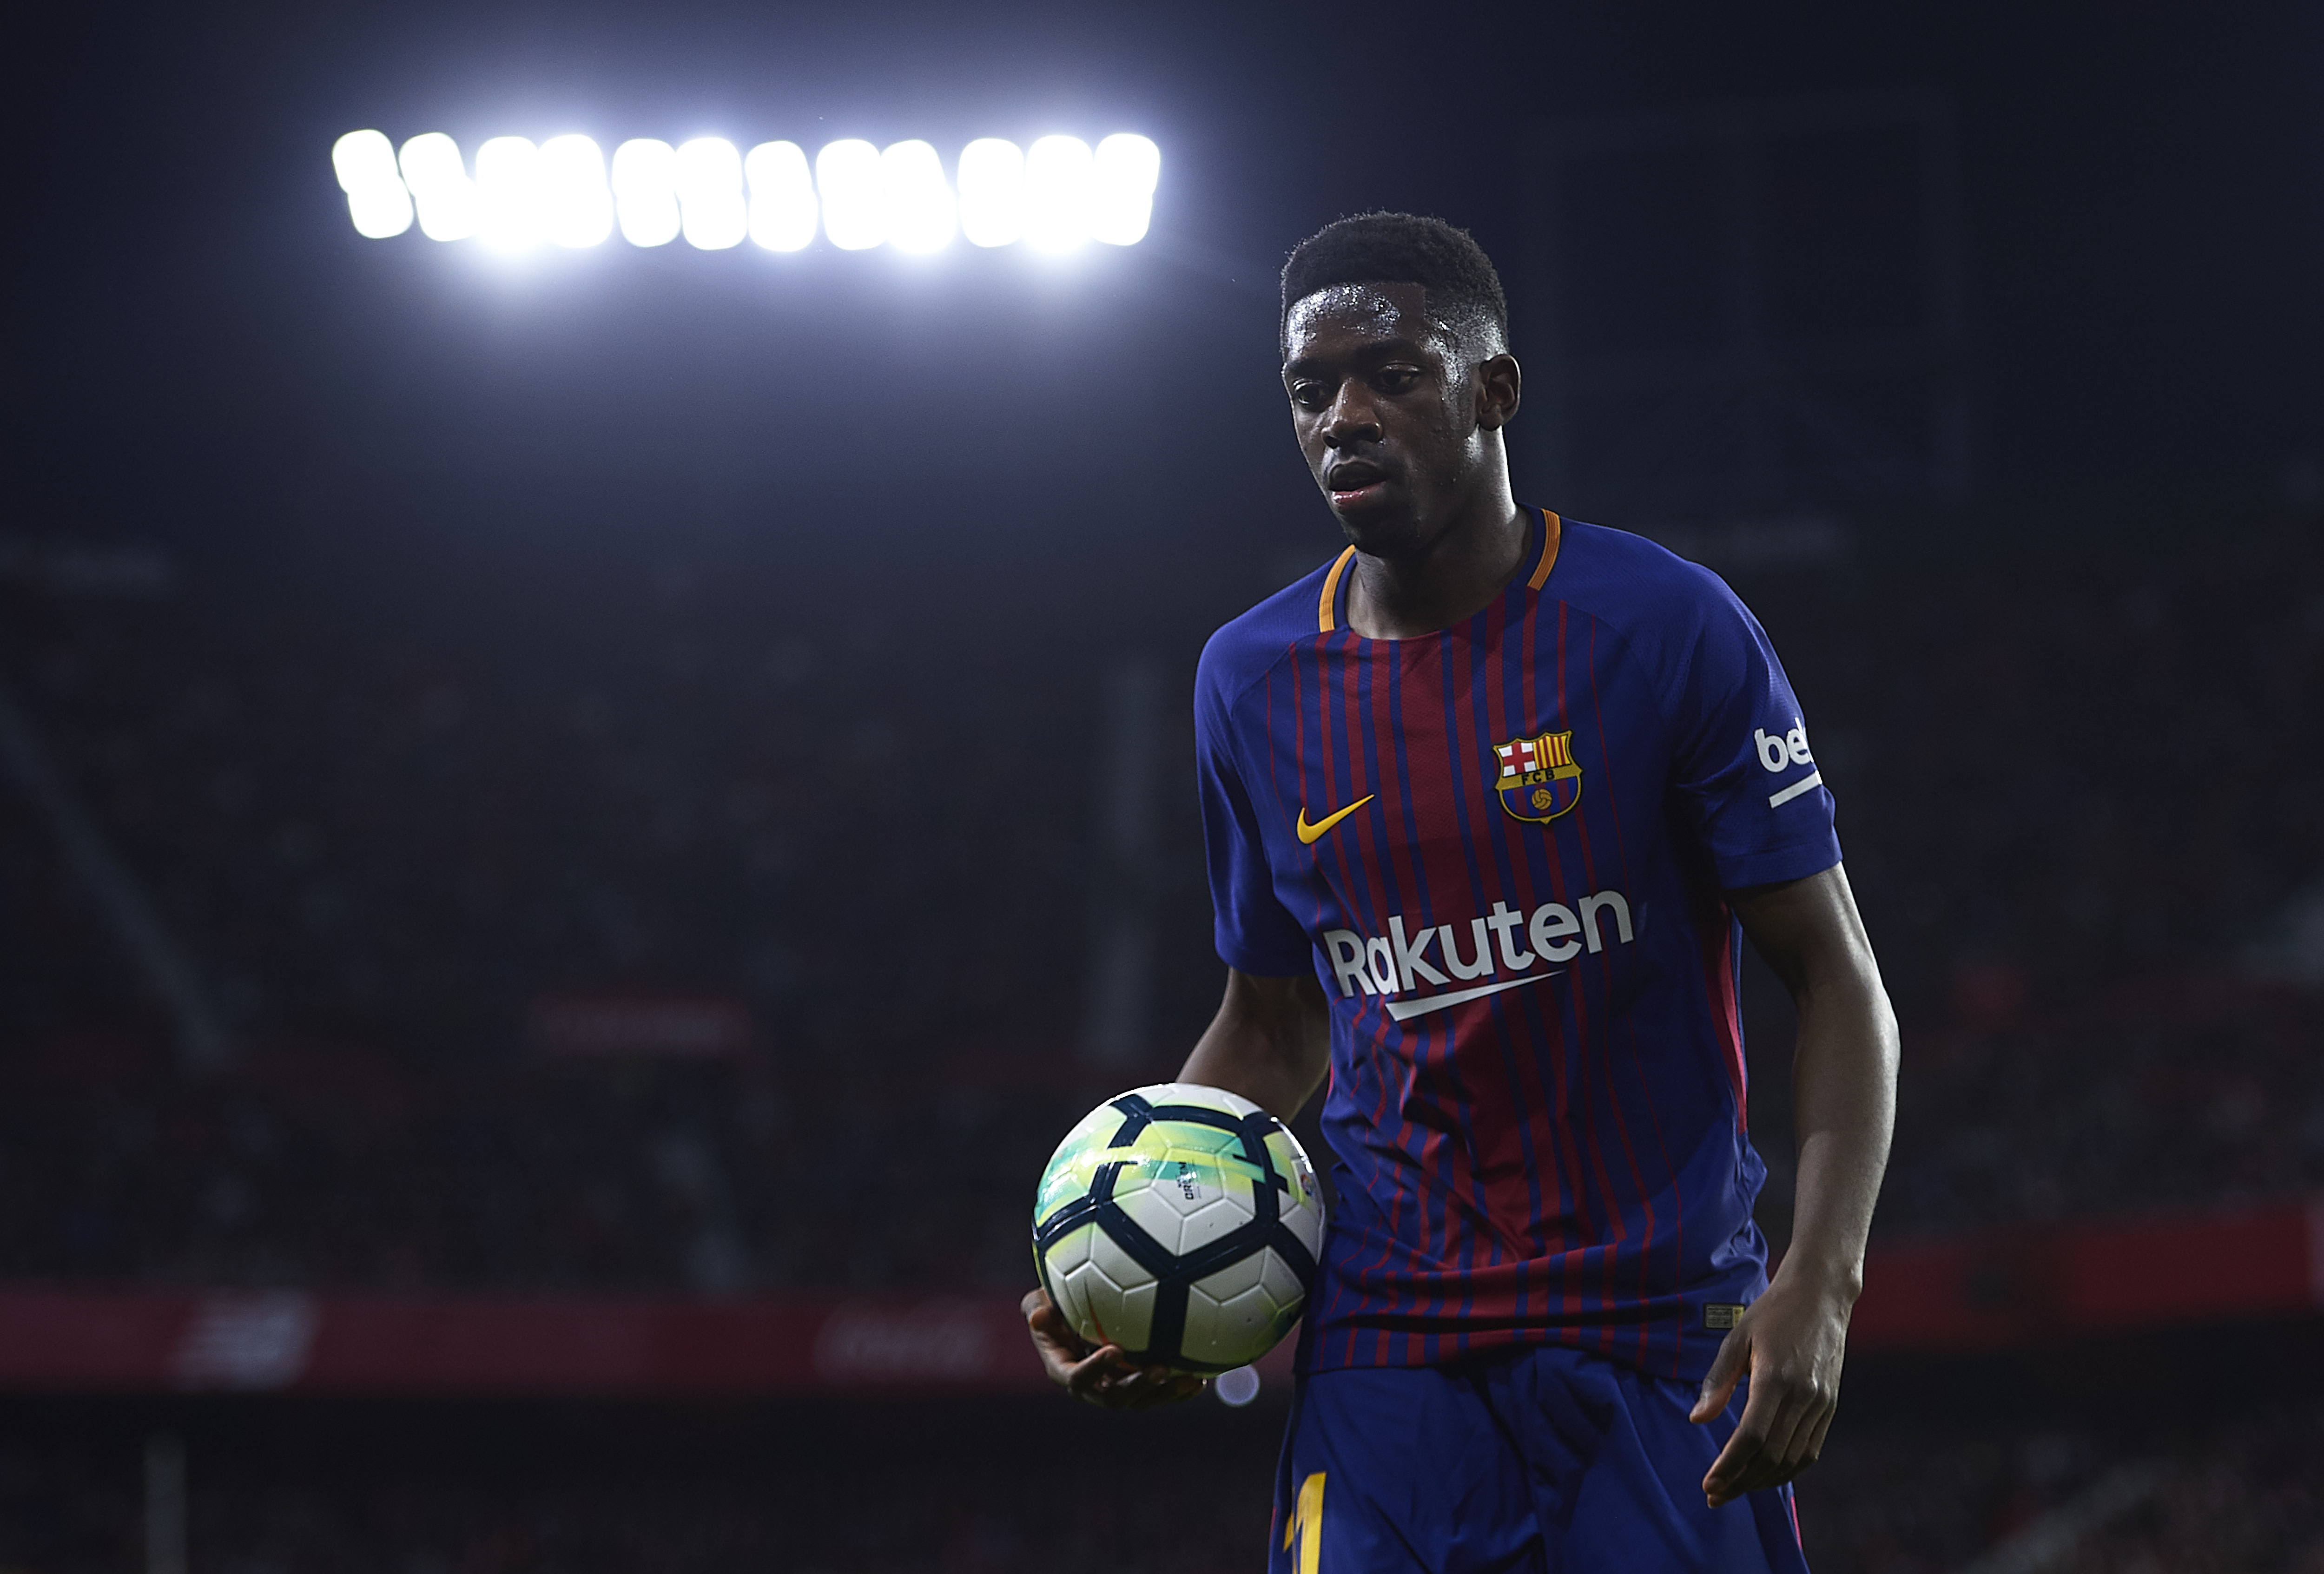 Ousmane Dembele could look to move elsewhere in search of first team football as his chances of succeeding at Barcelona remain in doubt. (Courtesy: AFP/Getty)